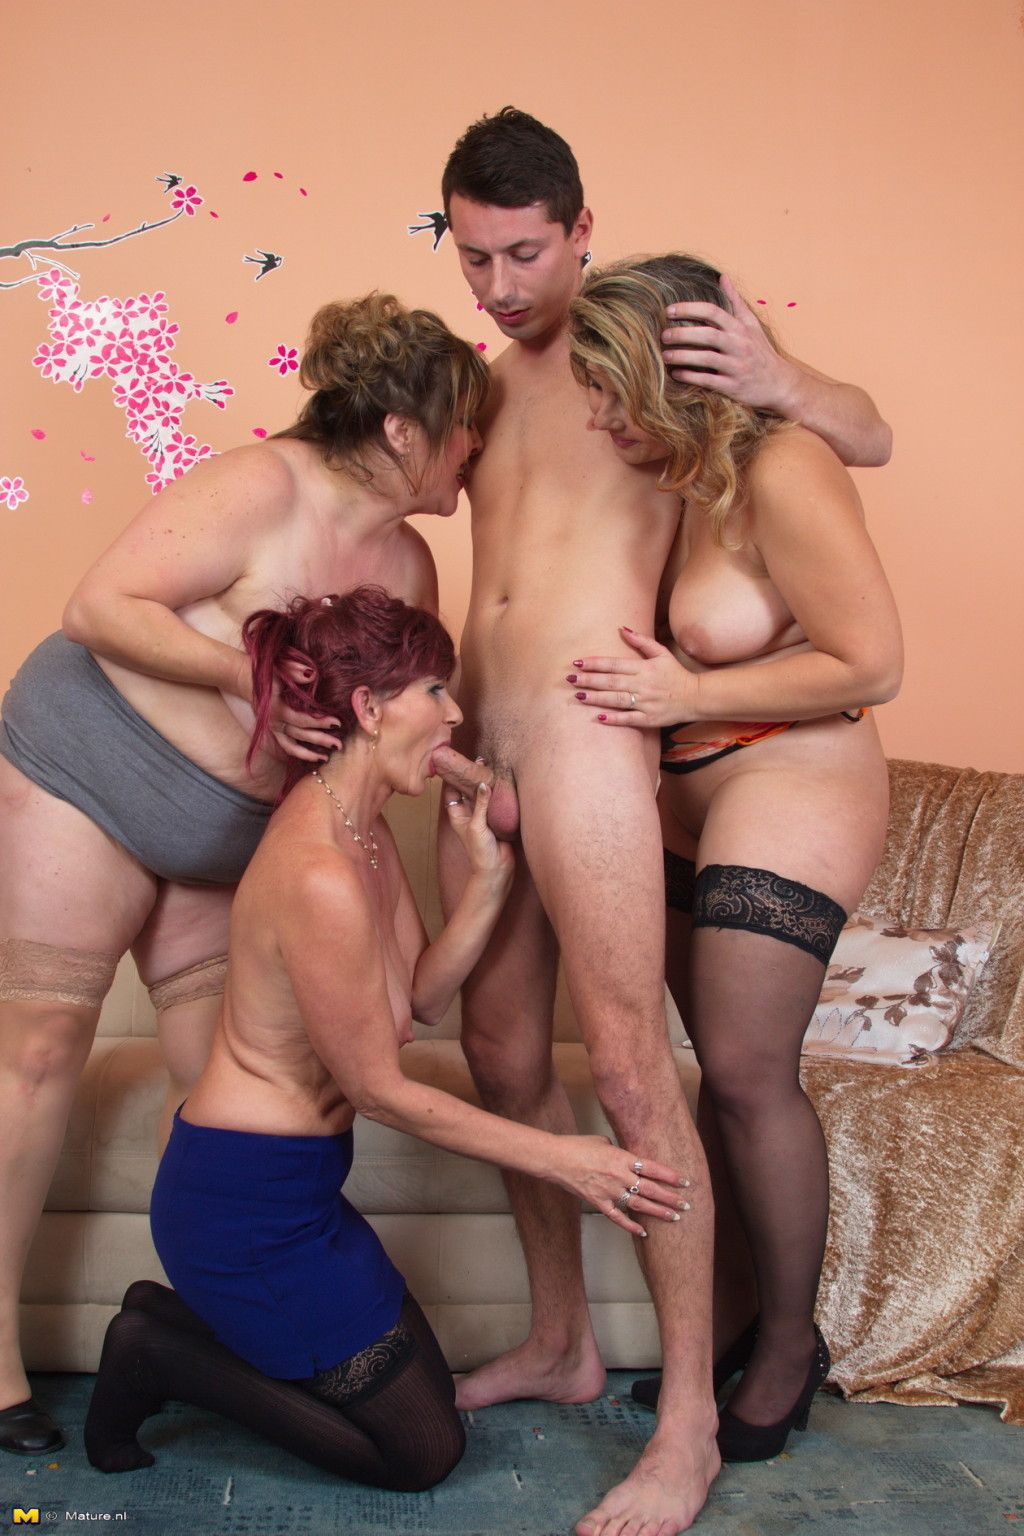 Thanks! Hardly Gangbang group action agree, very